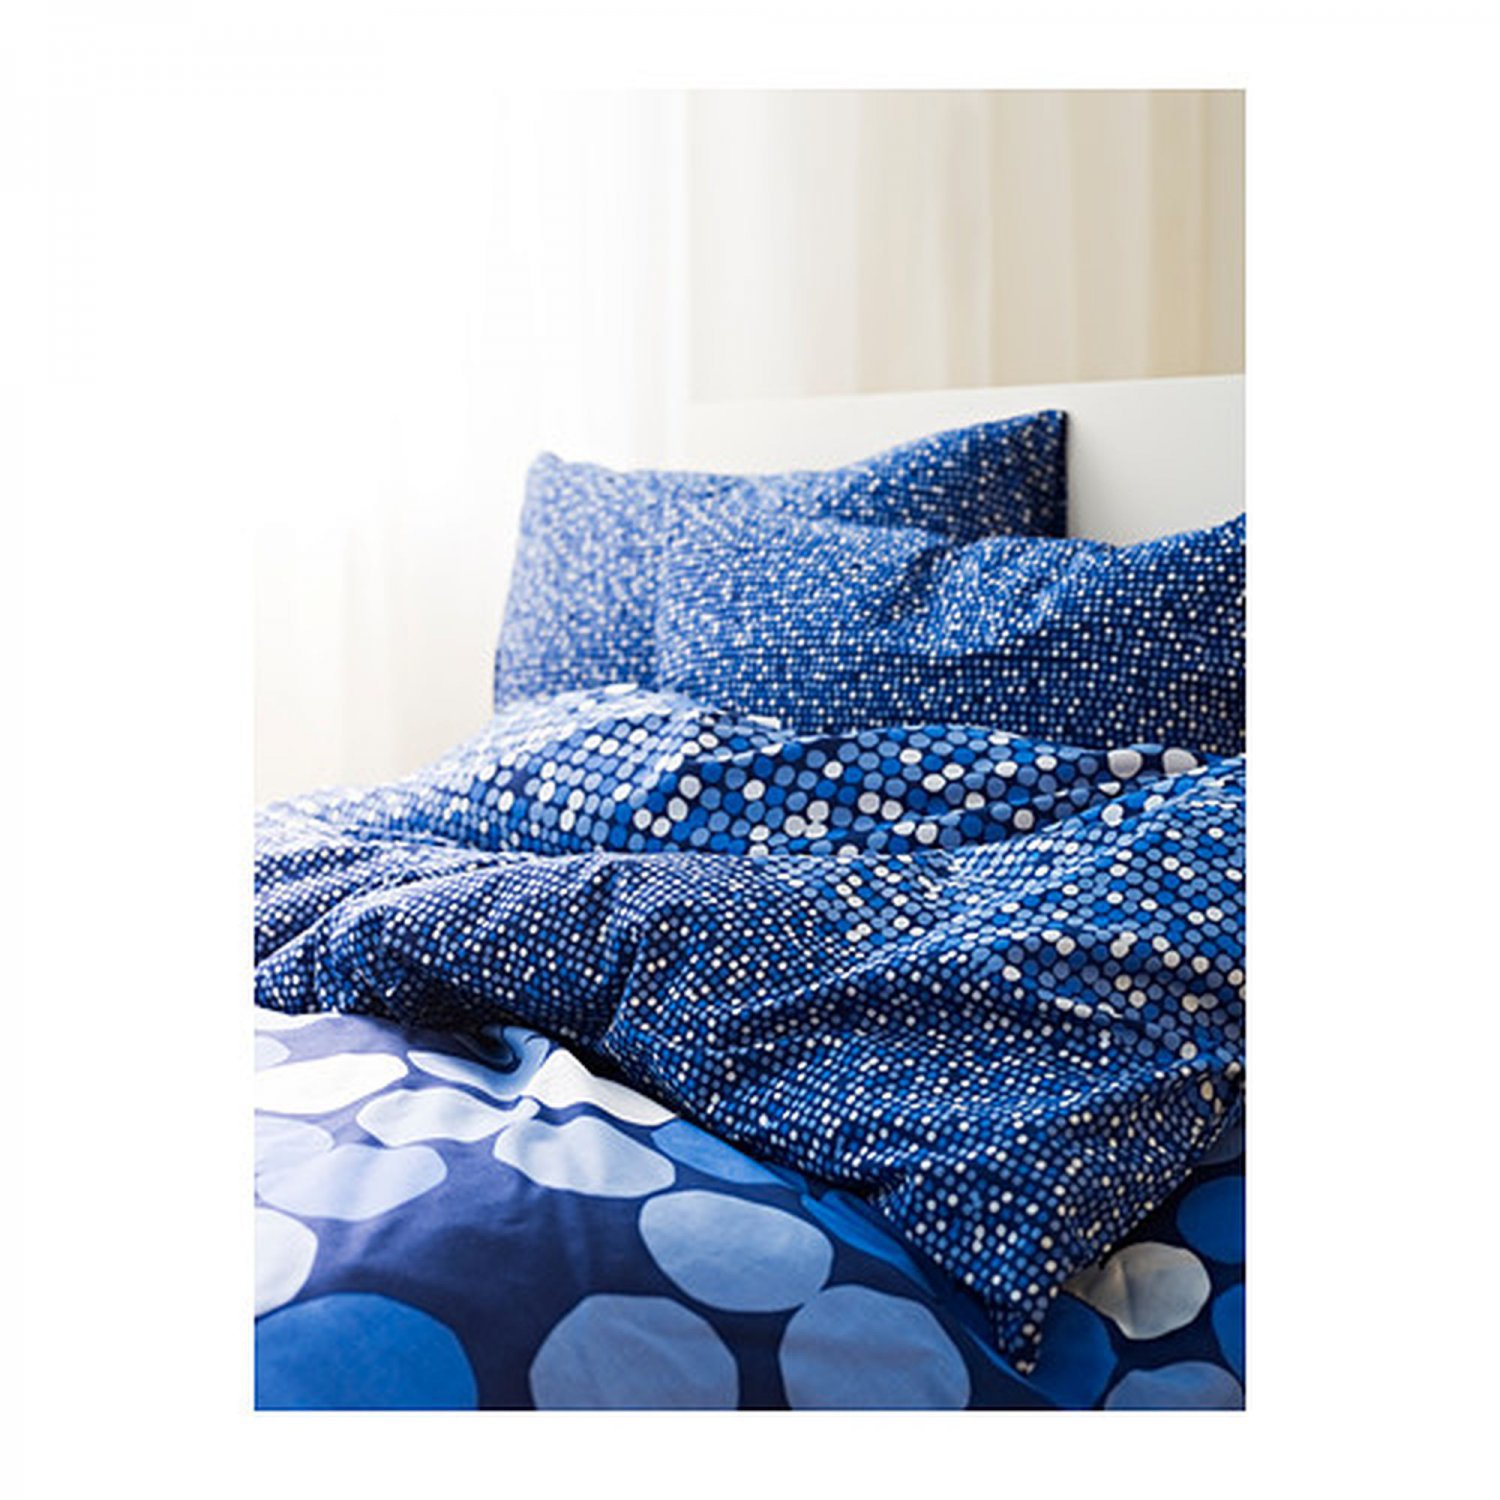 Ikea Sm 214 Rboll Smorboll King Size Quilt Duvet Cover Bedding